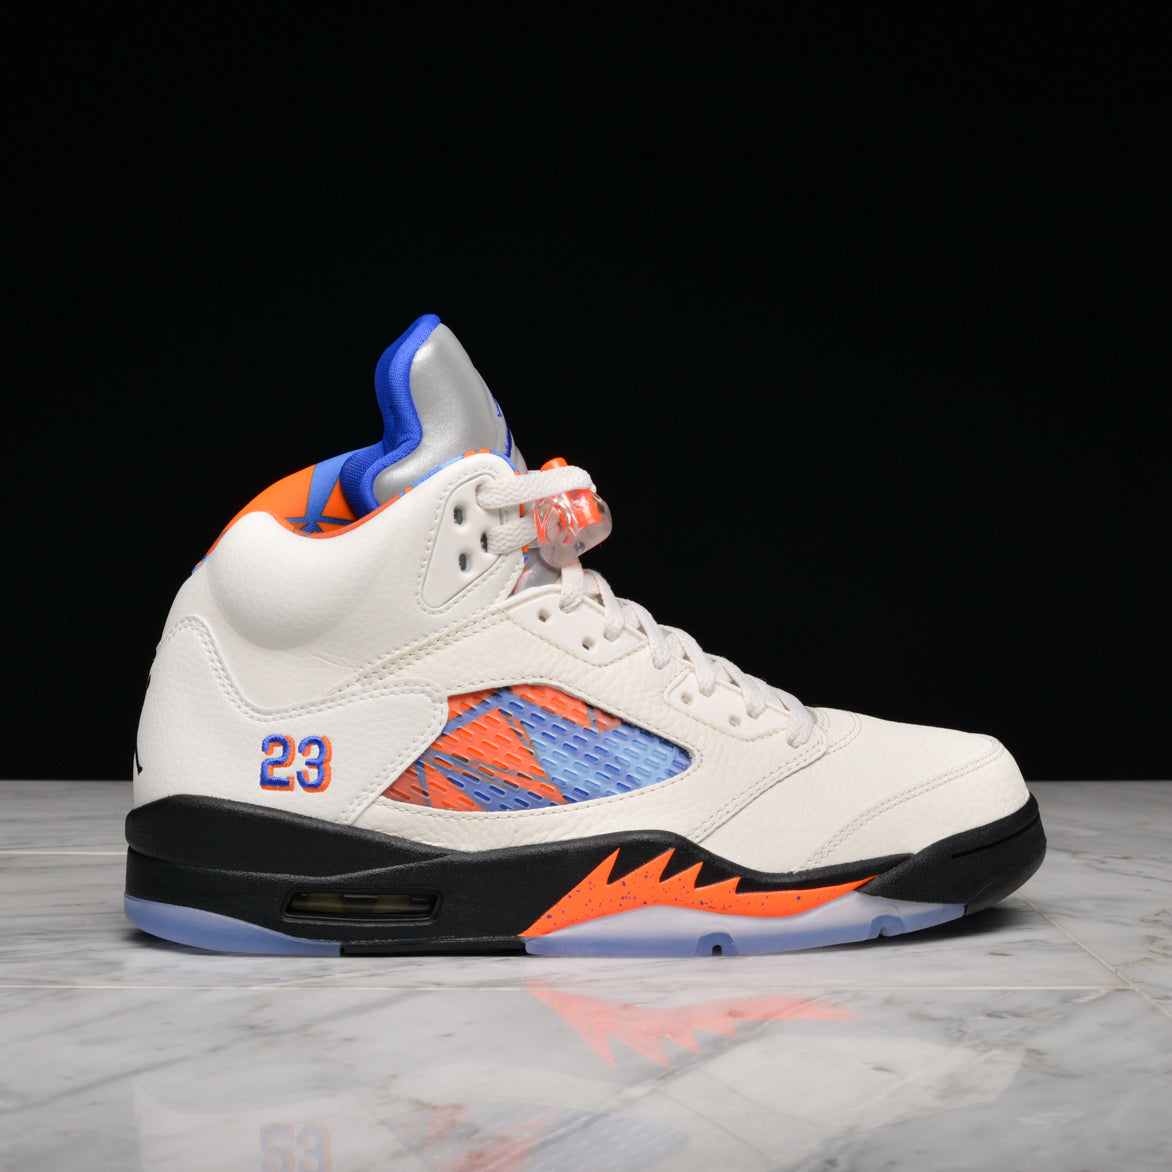 035134ff481f68 AIR JORDAN 5 RETRO